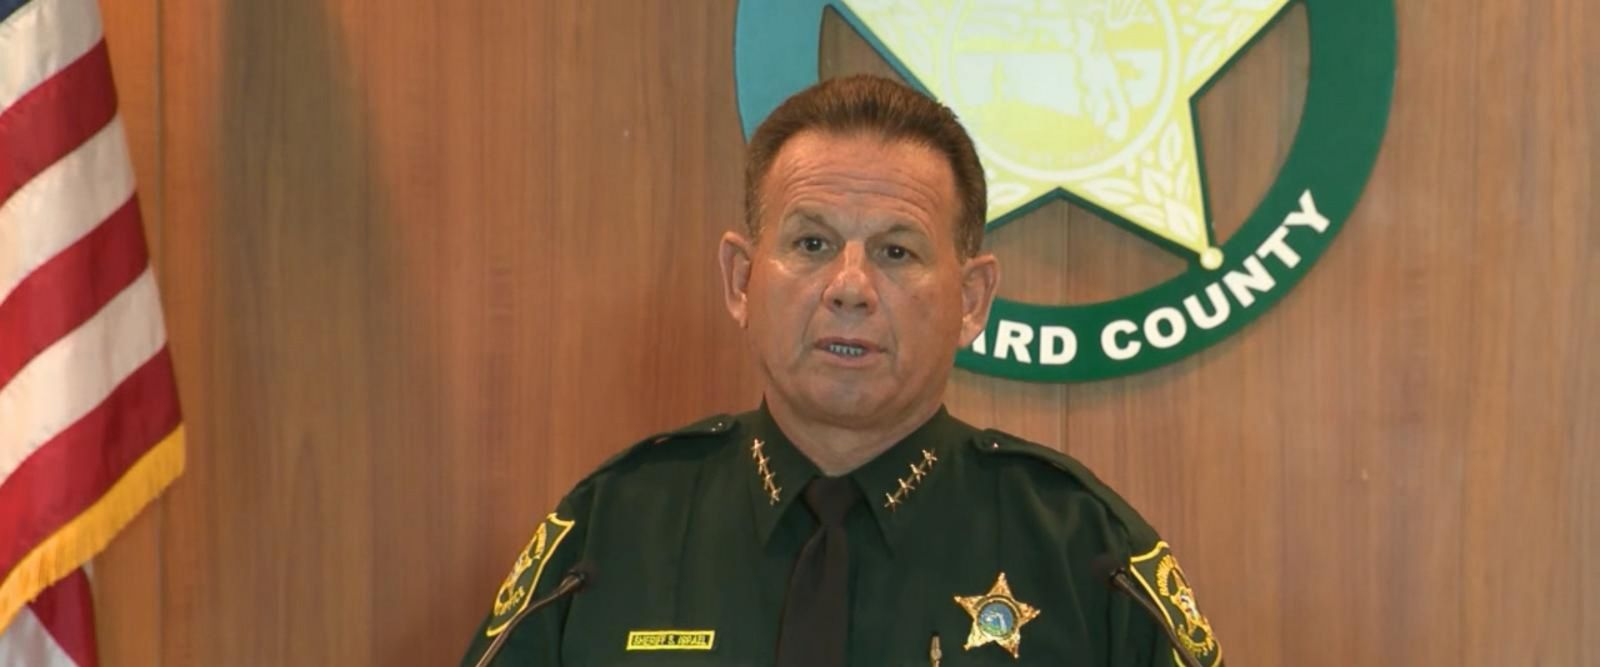 VIDEO: Armed school officer stood outside for 4 minutes doing 'nothing' during massacre: Sheriff